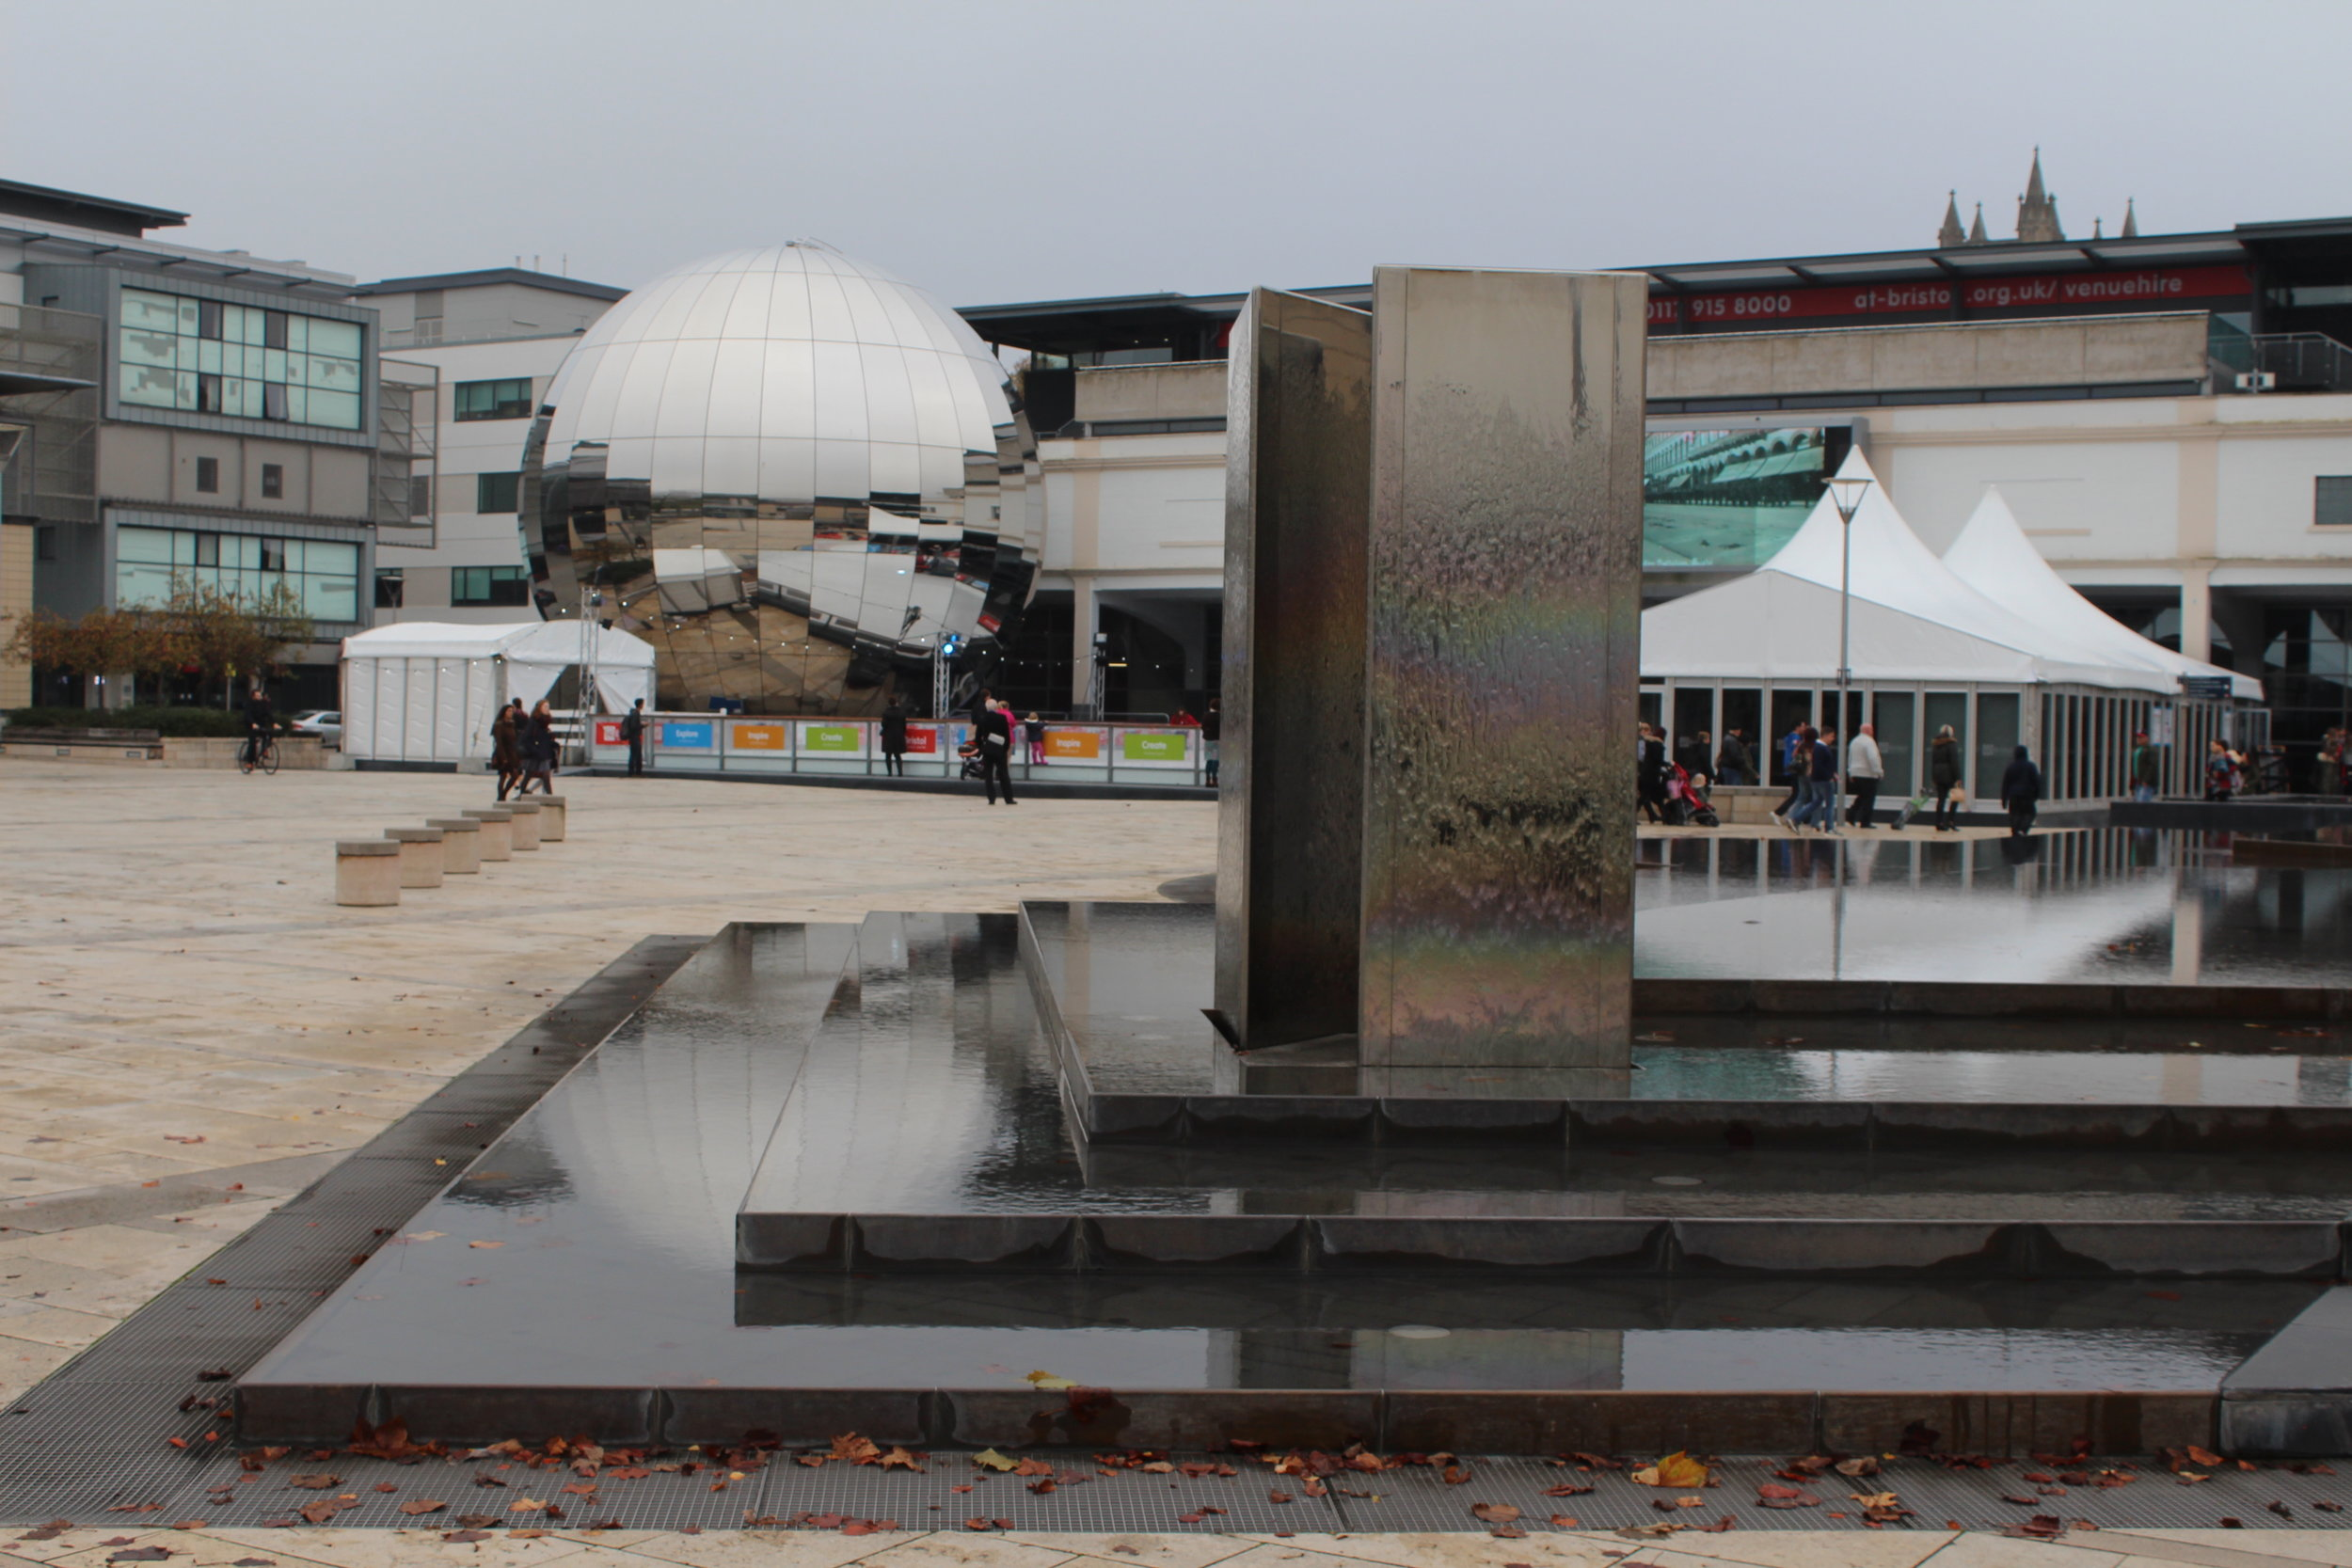 A water fountain disguised as steps, in front of the Planetarium (mirrored ball) and an ice rin